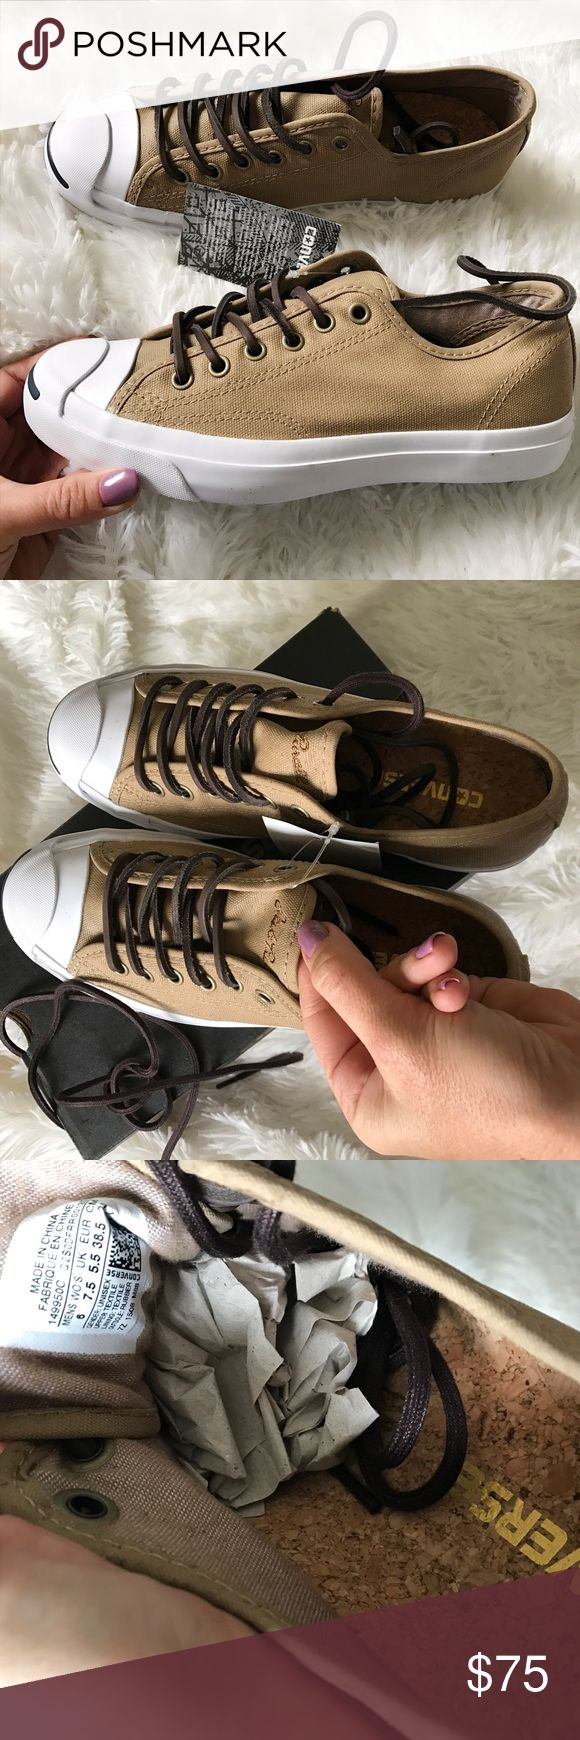 NWB 👣 CONVERSE JACK PURCELL SZ 6m | 7.5 w New never worn CONVERSE JACK PURCELL! CANVAS UPPER SIZE 6 MEN's | 7.5 WOMEN | 24 cm. This shoe is beyond perfect for men or women. 😍 LEATHER laces, with a set of additional traditional laces. Ships same or next day from smoke free home IN ORIGINAL FULL BOX.   PRICE IS FIRM. Bundle items to save. Checkout all my 👣 listings. 100% authentic product purchased directly from CONVERSE. Converse Shoes Sneakers